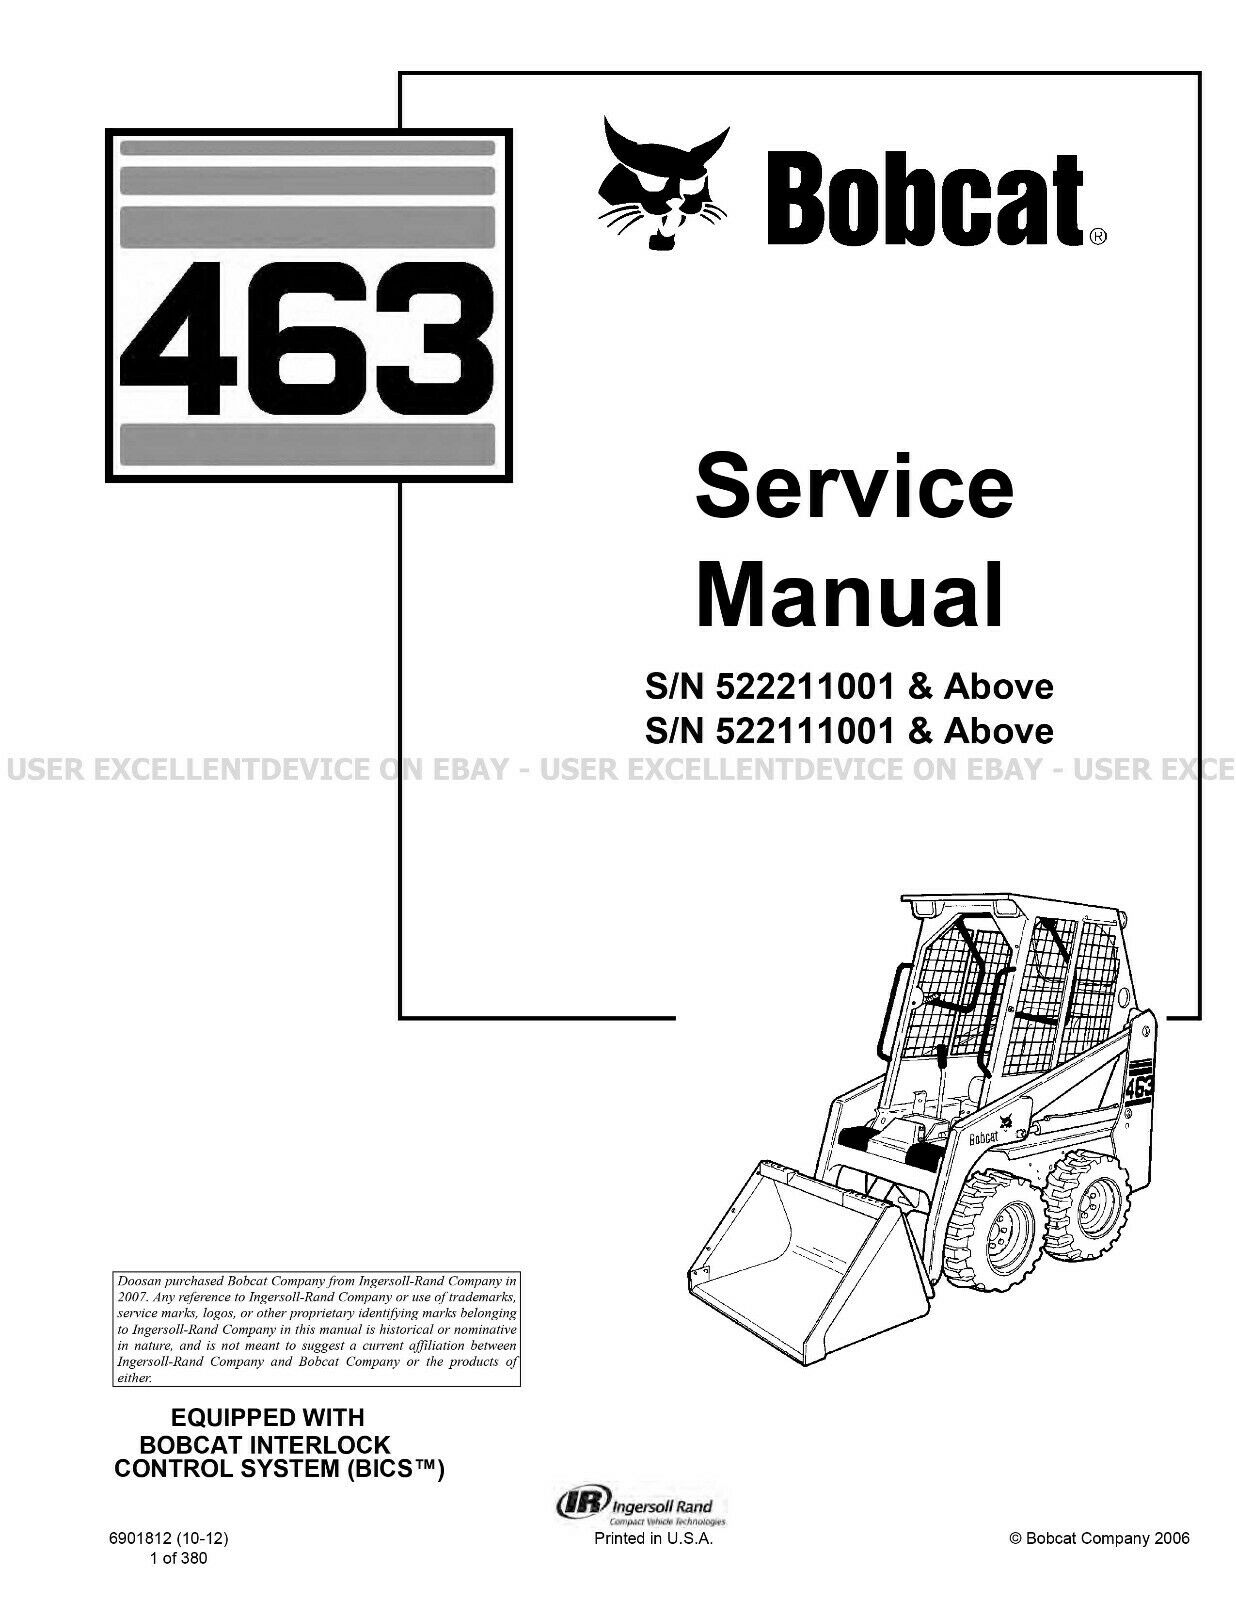 Bobcat 463 Revision 2012 Update Skid Steer Loader Printed